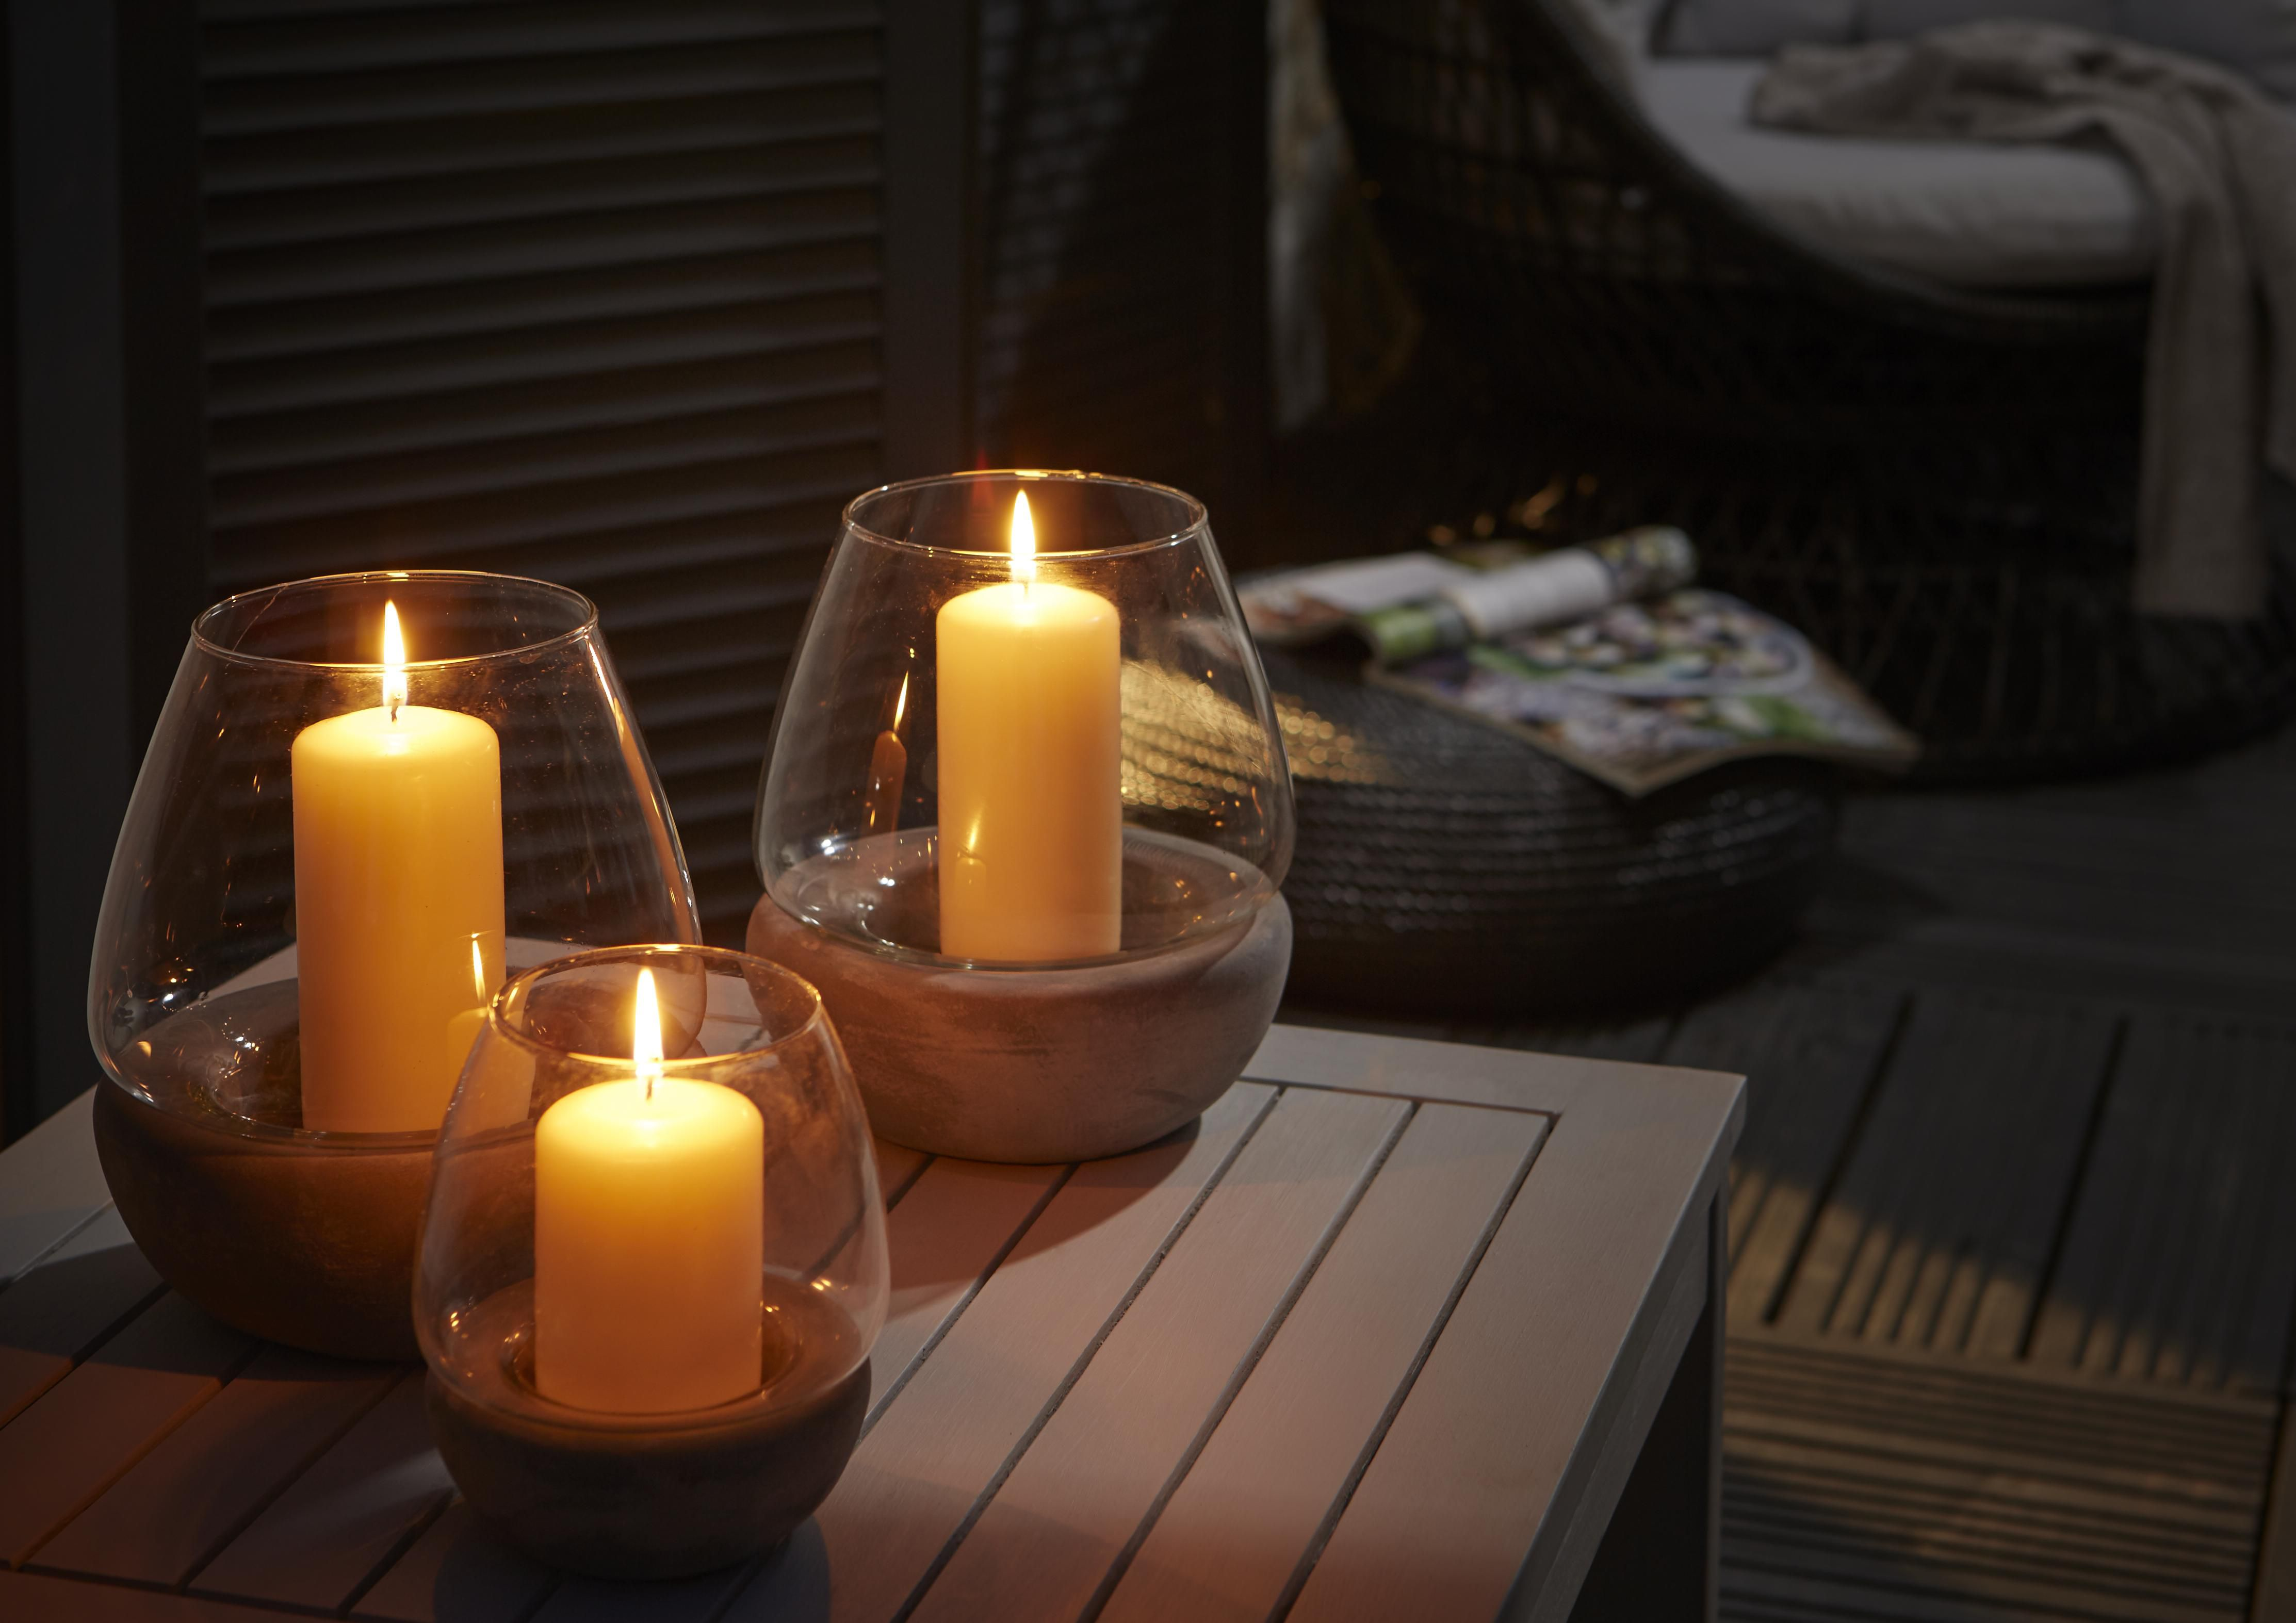 Garden Design With Outdoor Lights Lighting Departments Diy At Buampq With Design A Garden From Diy